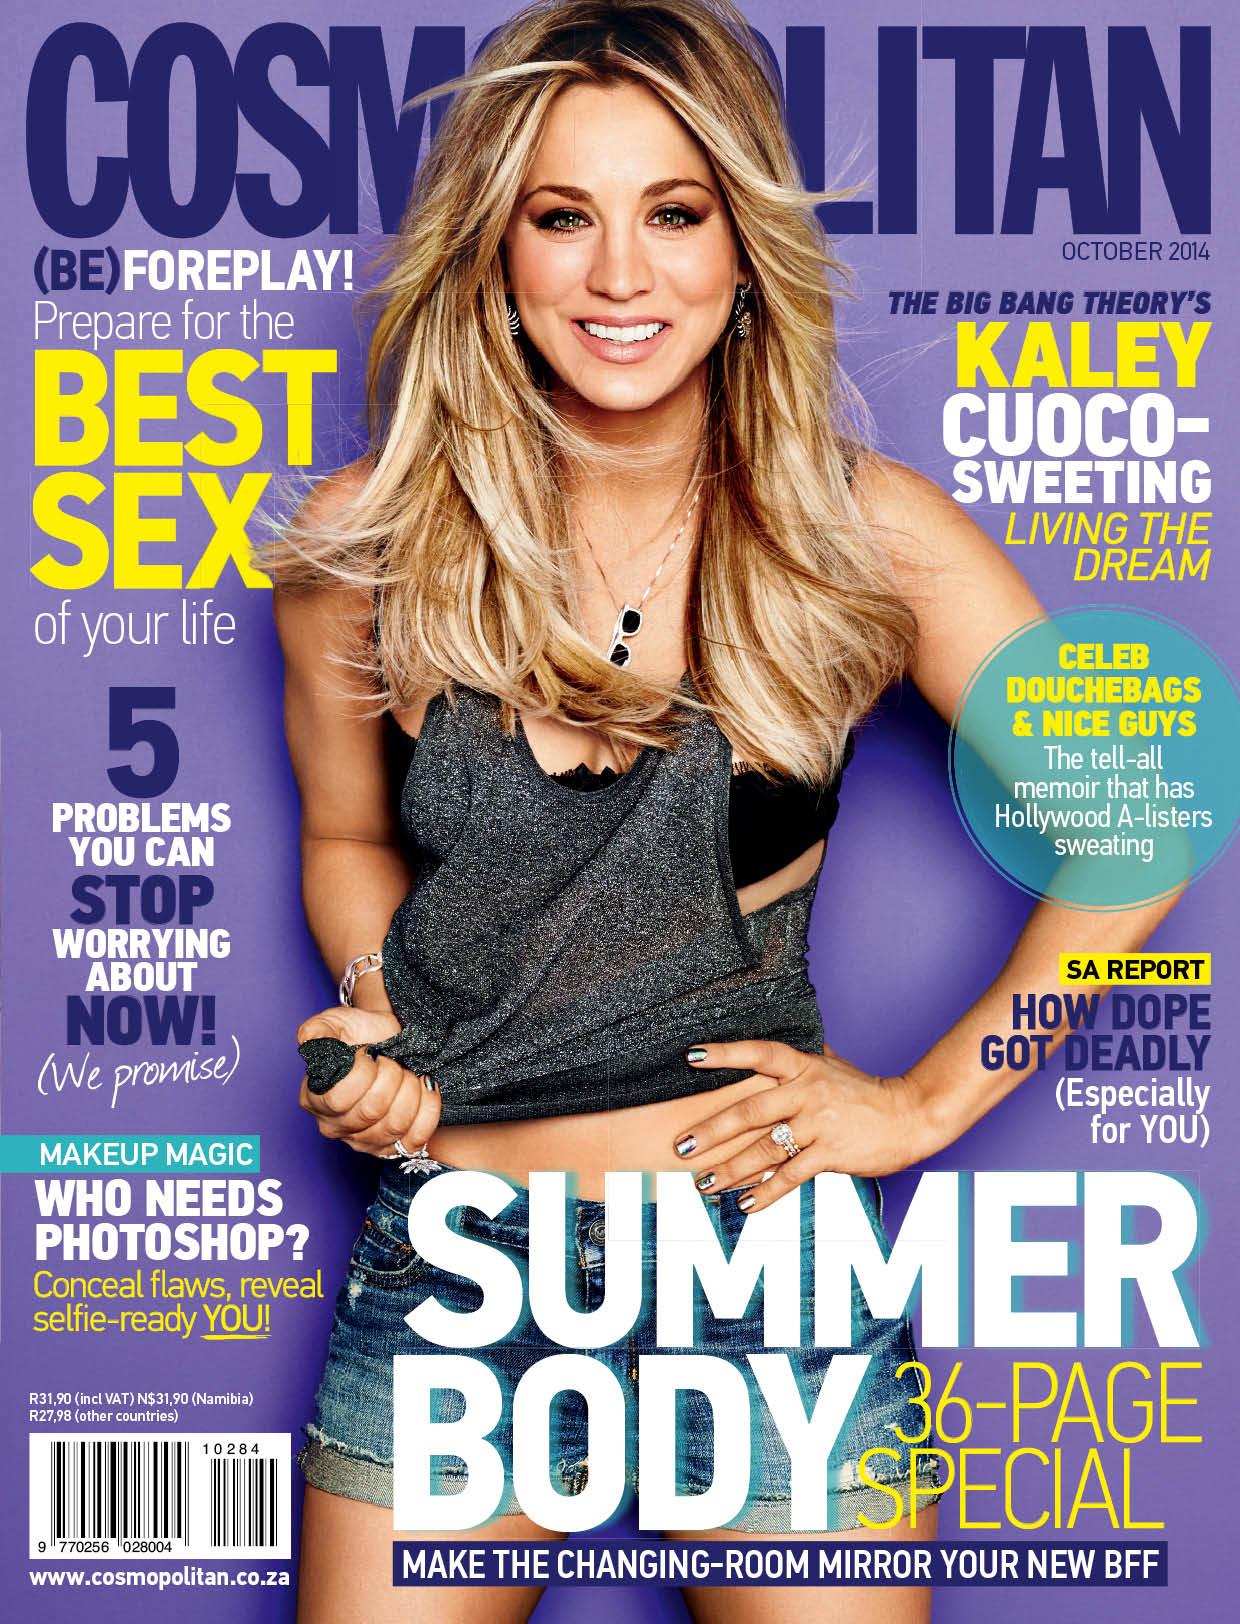 Beautiful American Actress Kaley Cuoco Modeling For The Cover Of Cosmopolitan South Africa Modeling As One Of The Highest Paid Actresses In The World. The World's Highest Paid Actresses. The Top Earning Actresses In Hollywood.